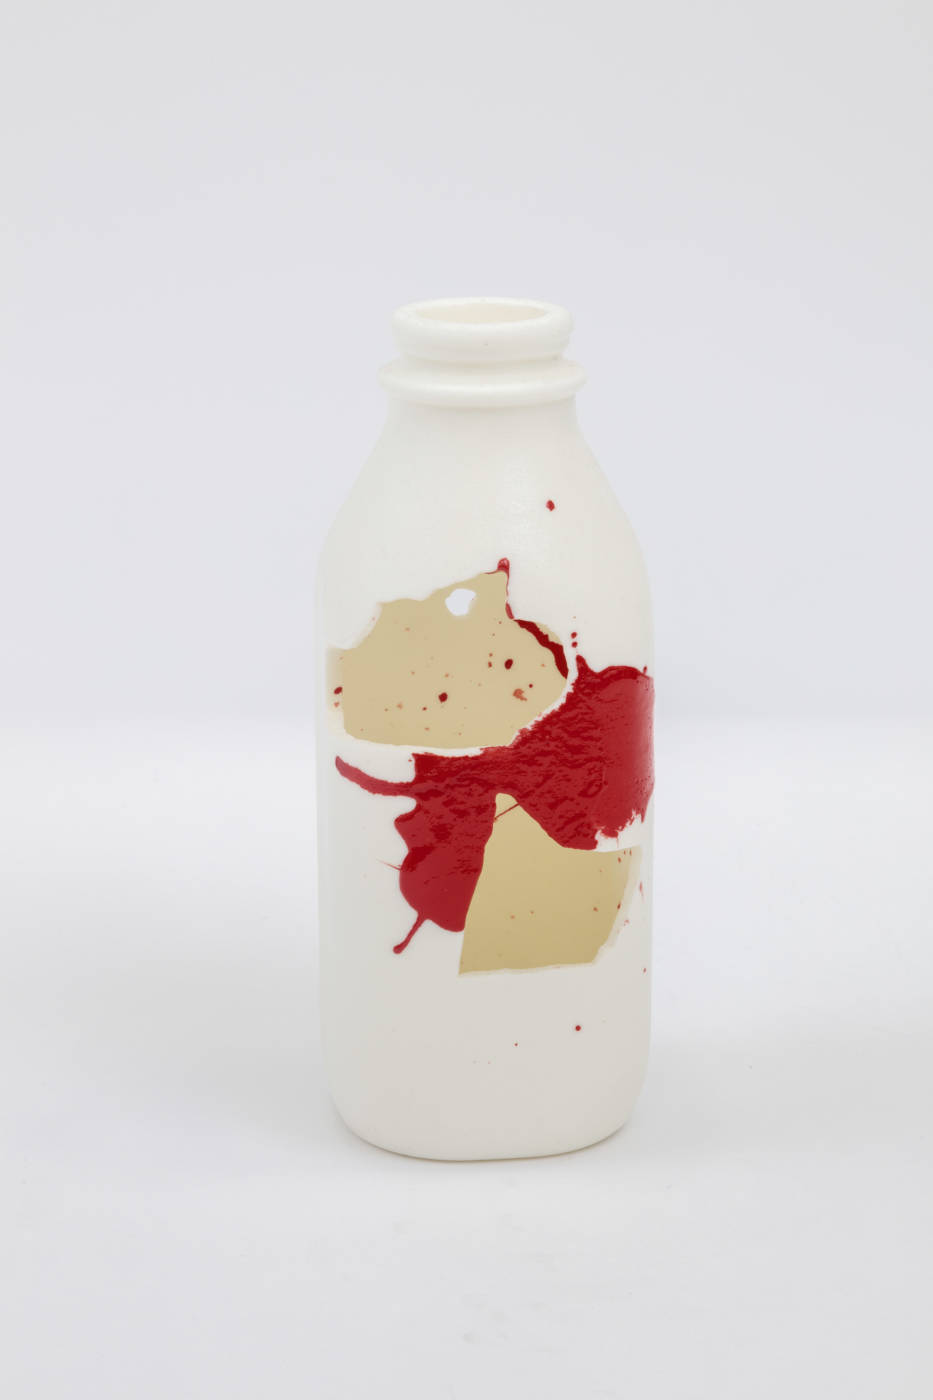 Bottle sculpture with splashes of cream and red color